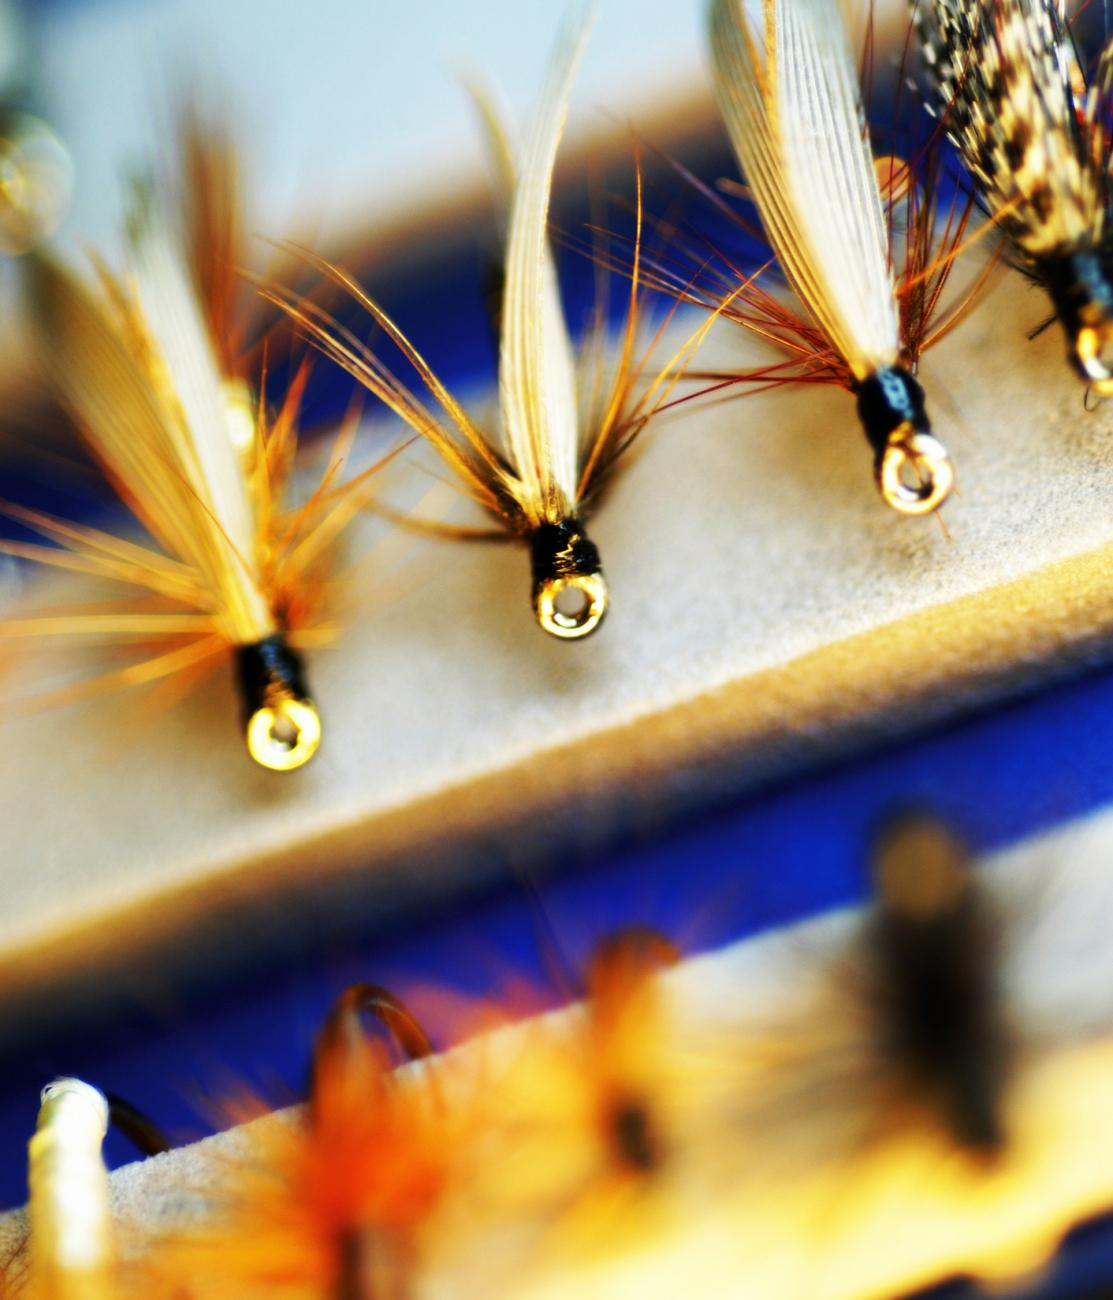 Unbelievable but true bait secrets-fishing lures-Thinkstock